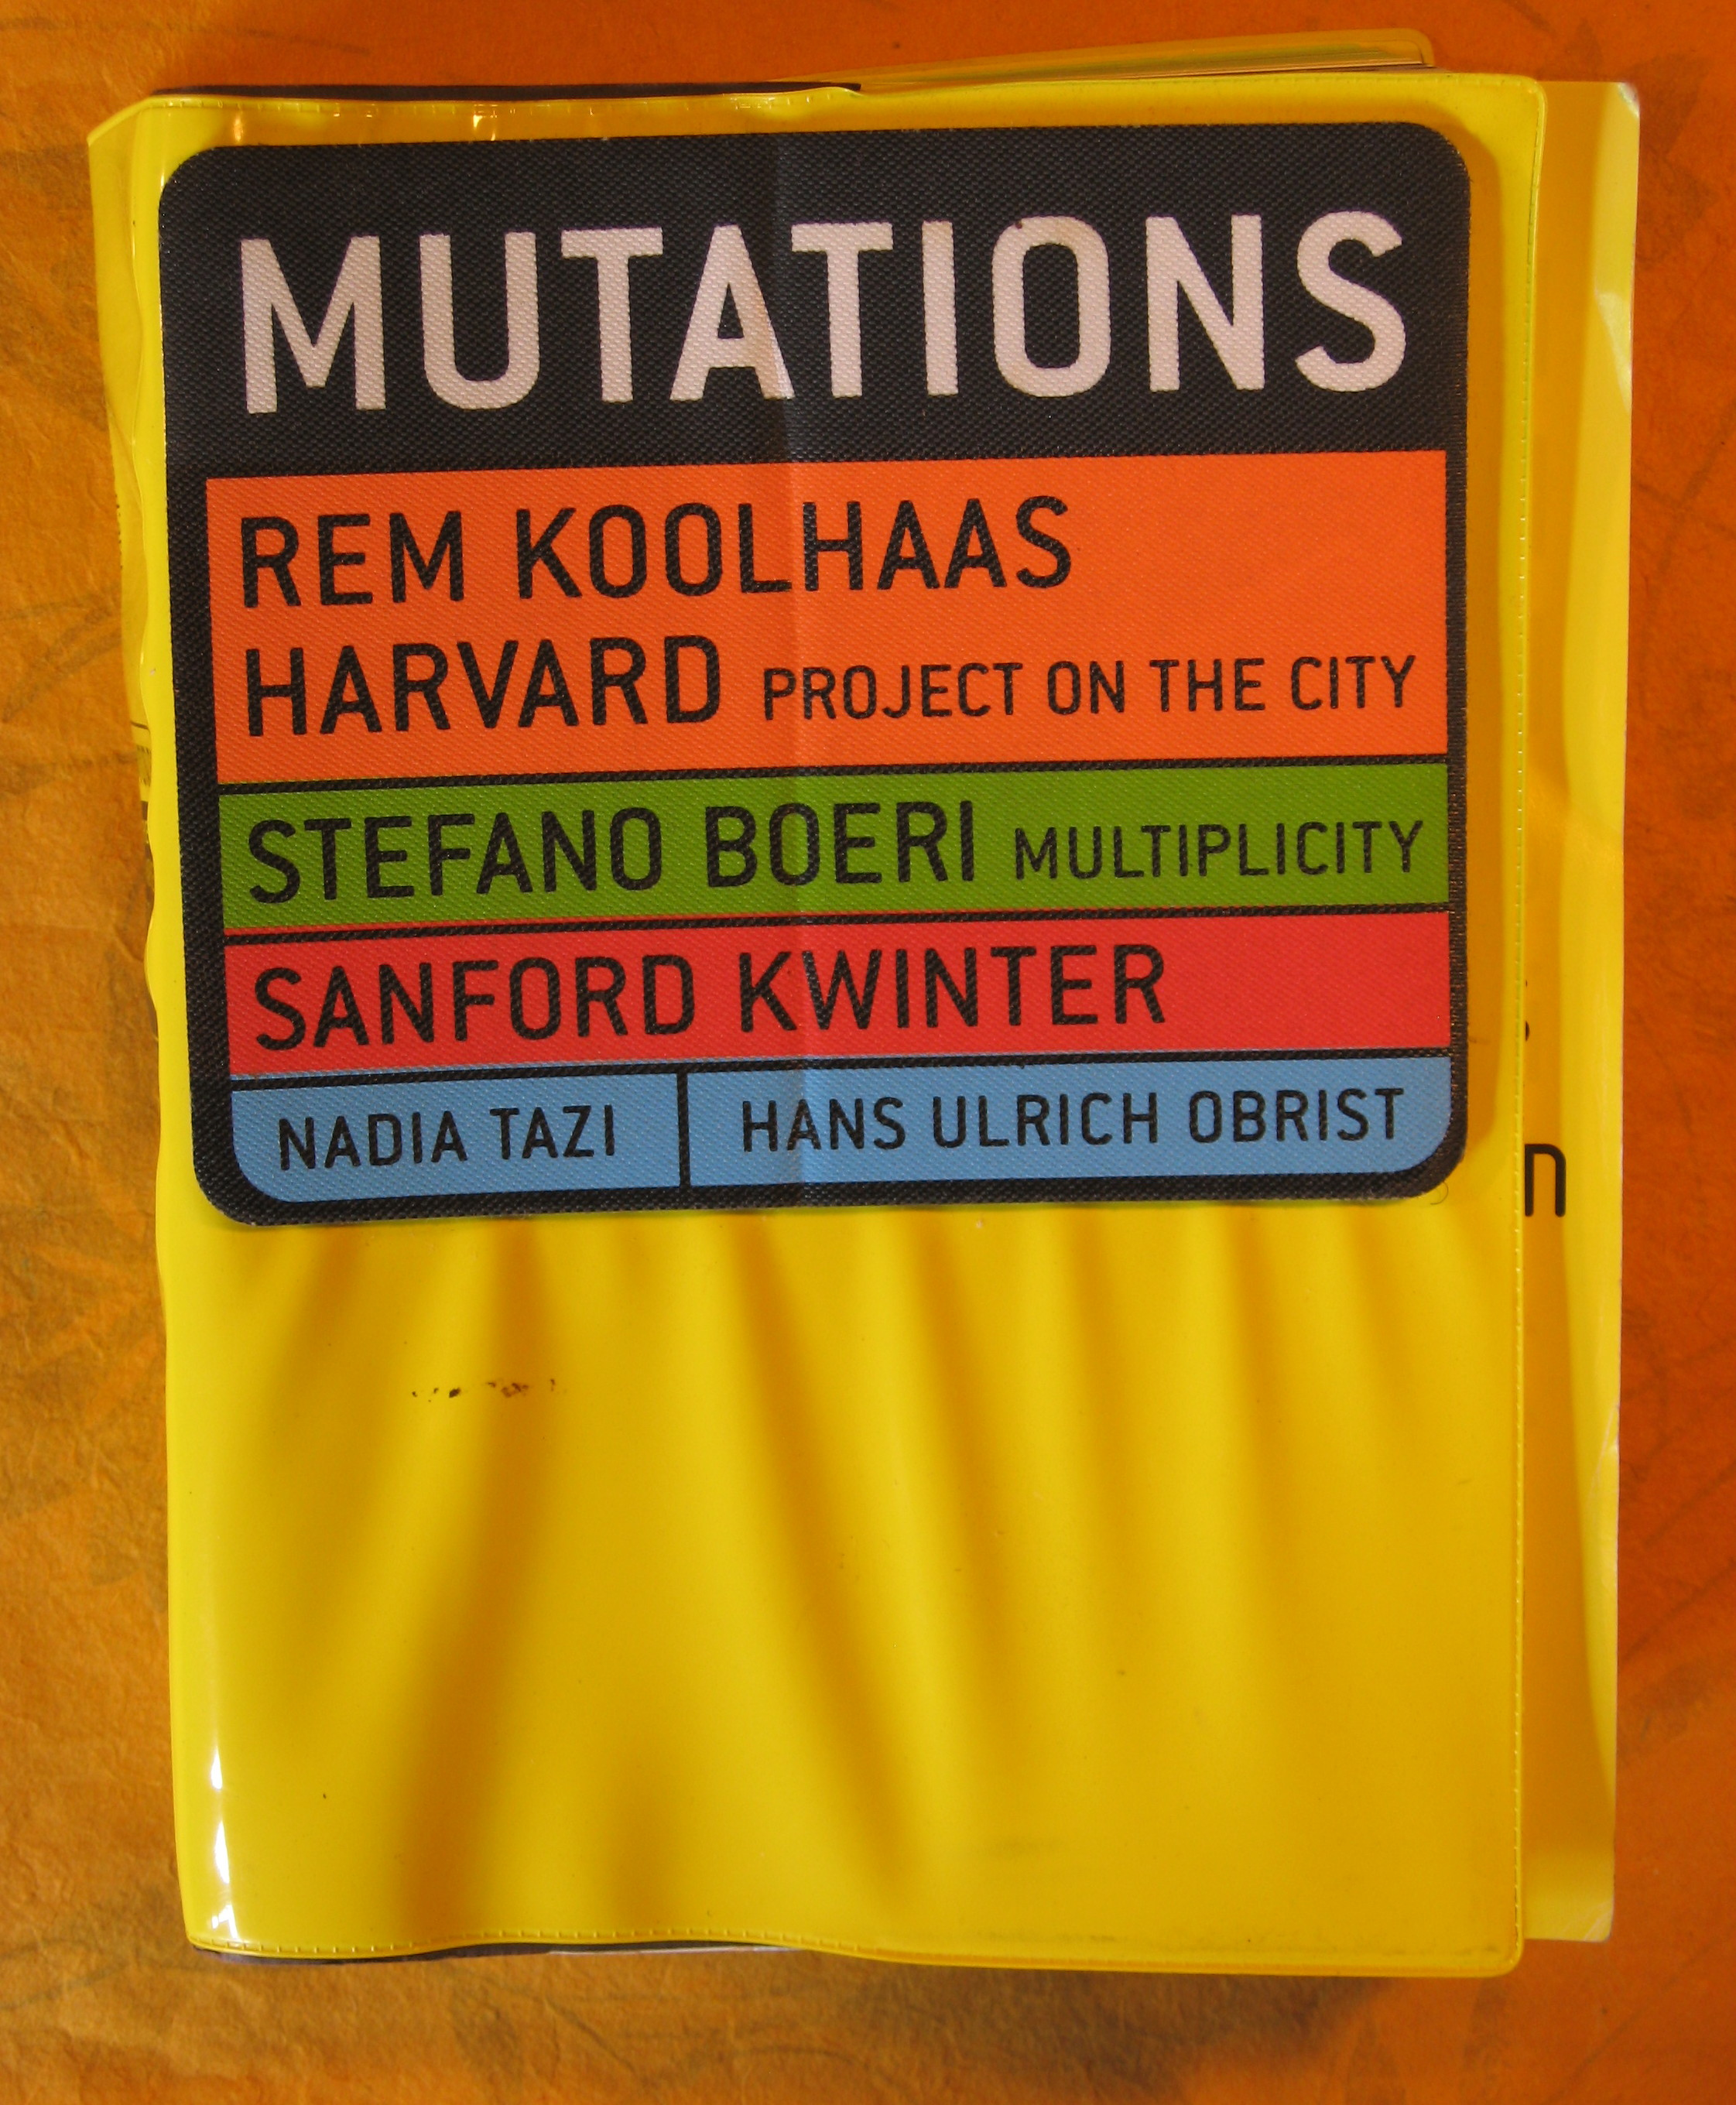 Image for Mutations. Rem Koolhaas. Harvard Project on the City. Stefano Boeri. Multiplicity. Sanford Kwinter. Madia Tazi. Hans Ulrich Obrist